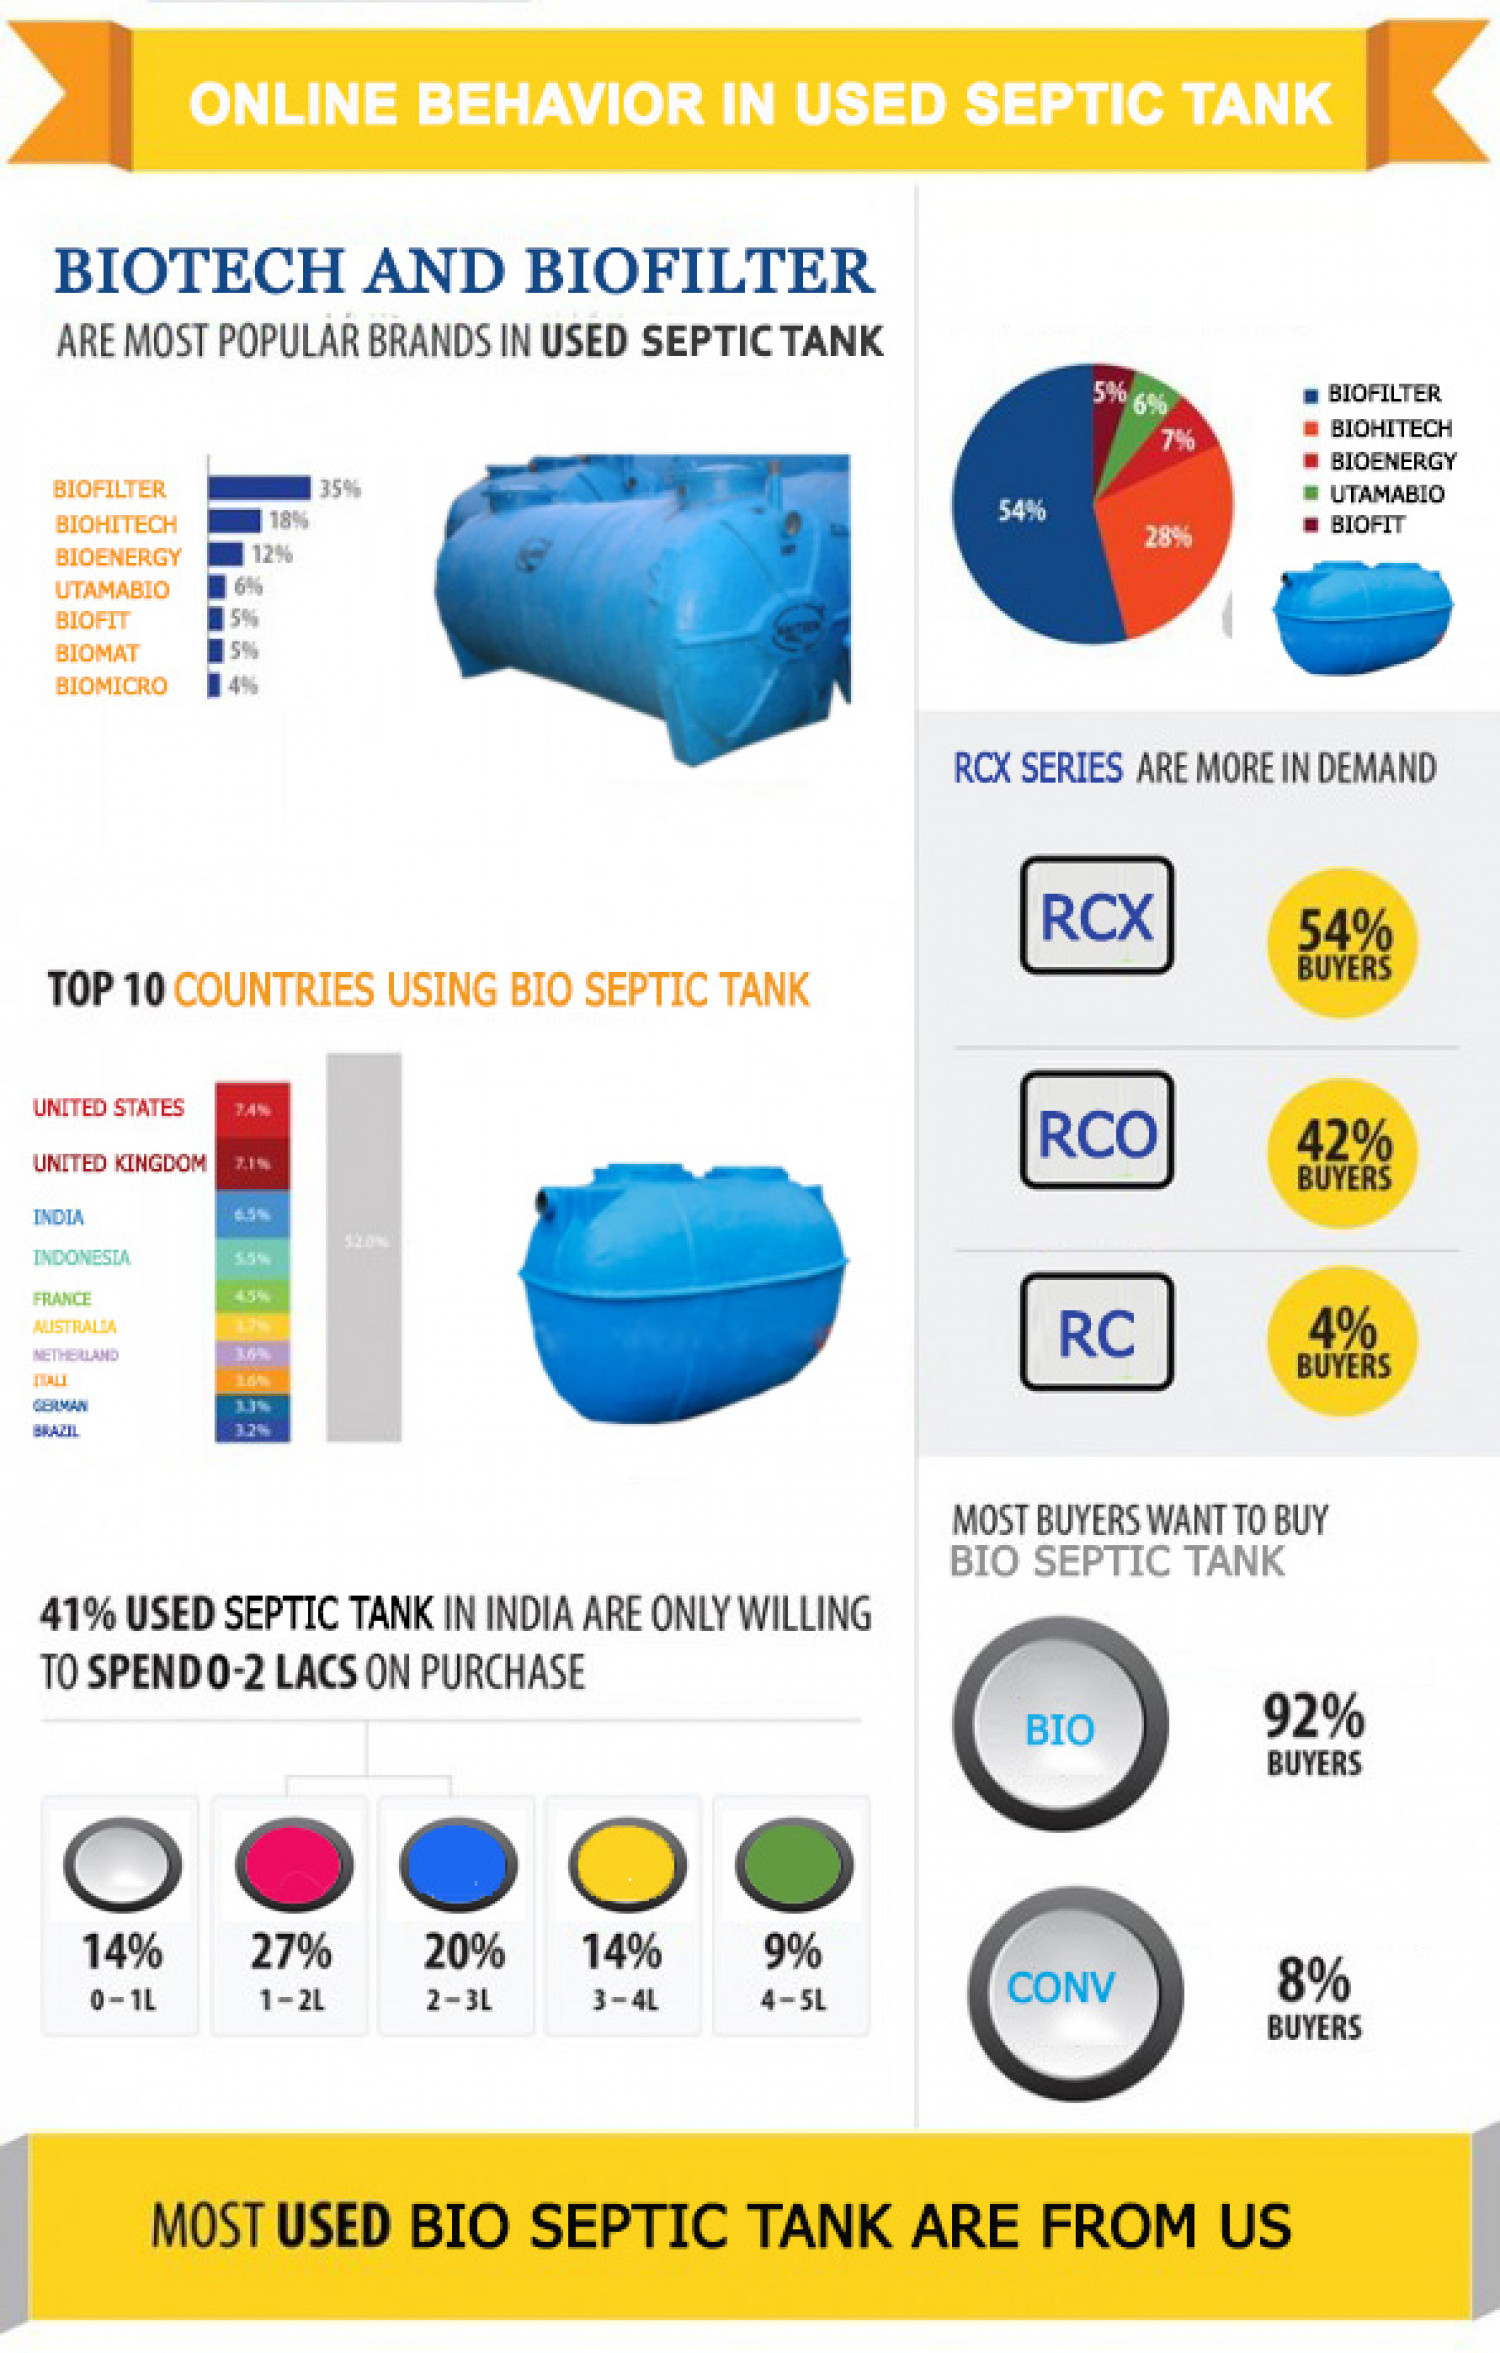 Septic tank biotech sales demography all over the world 2013 Infographic